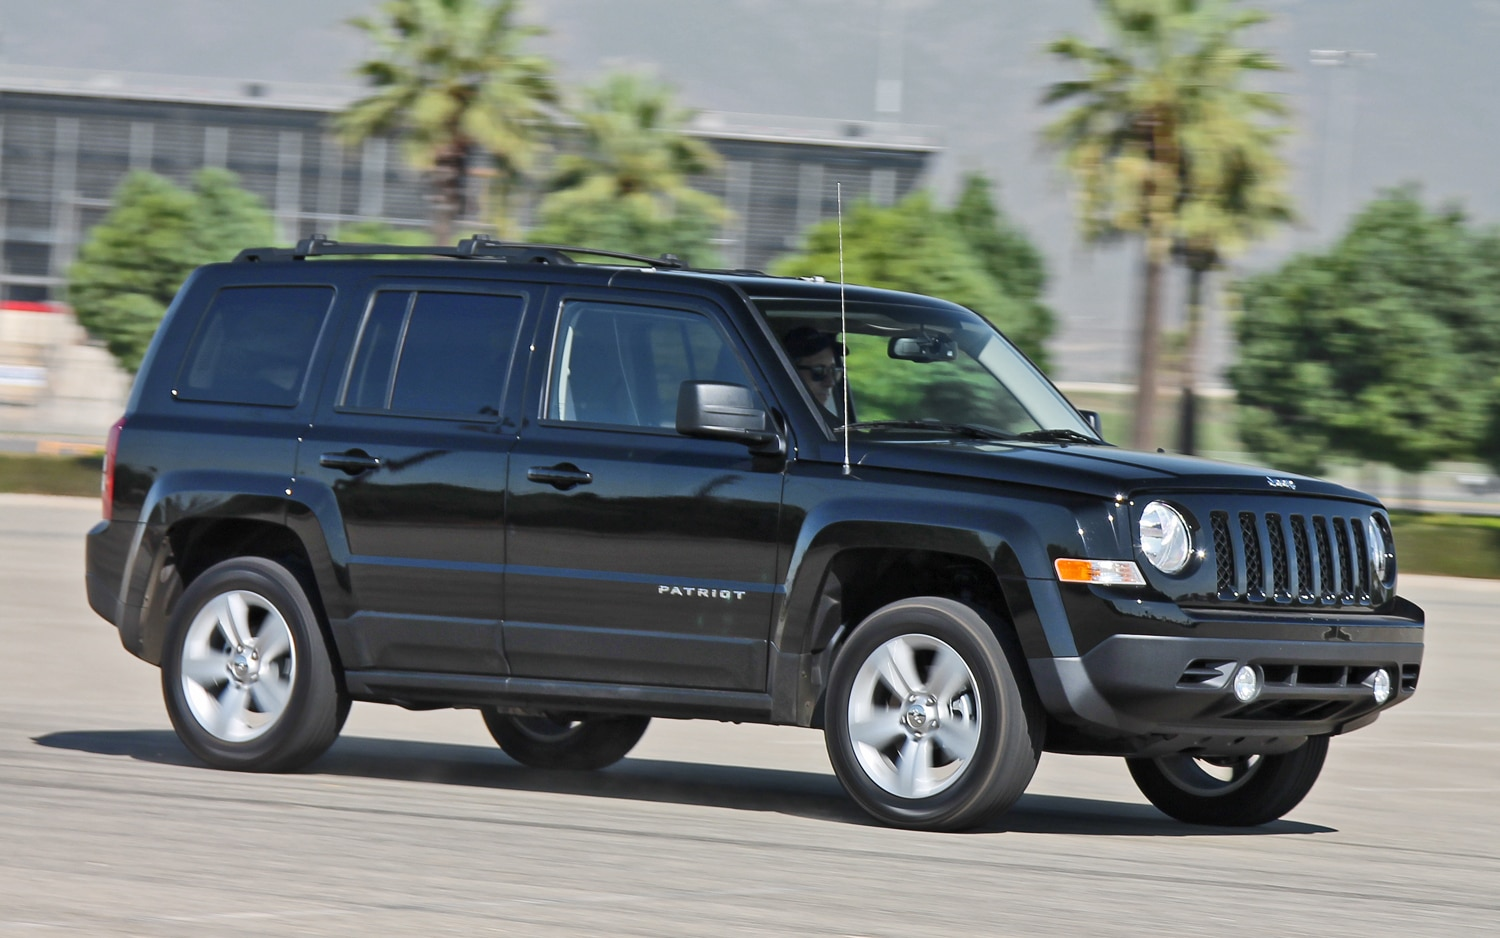 2013 Jeep Patriot Latitude 4X4 Front View In Motion 03